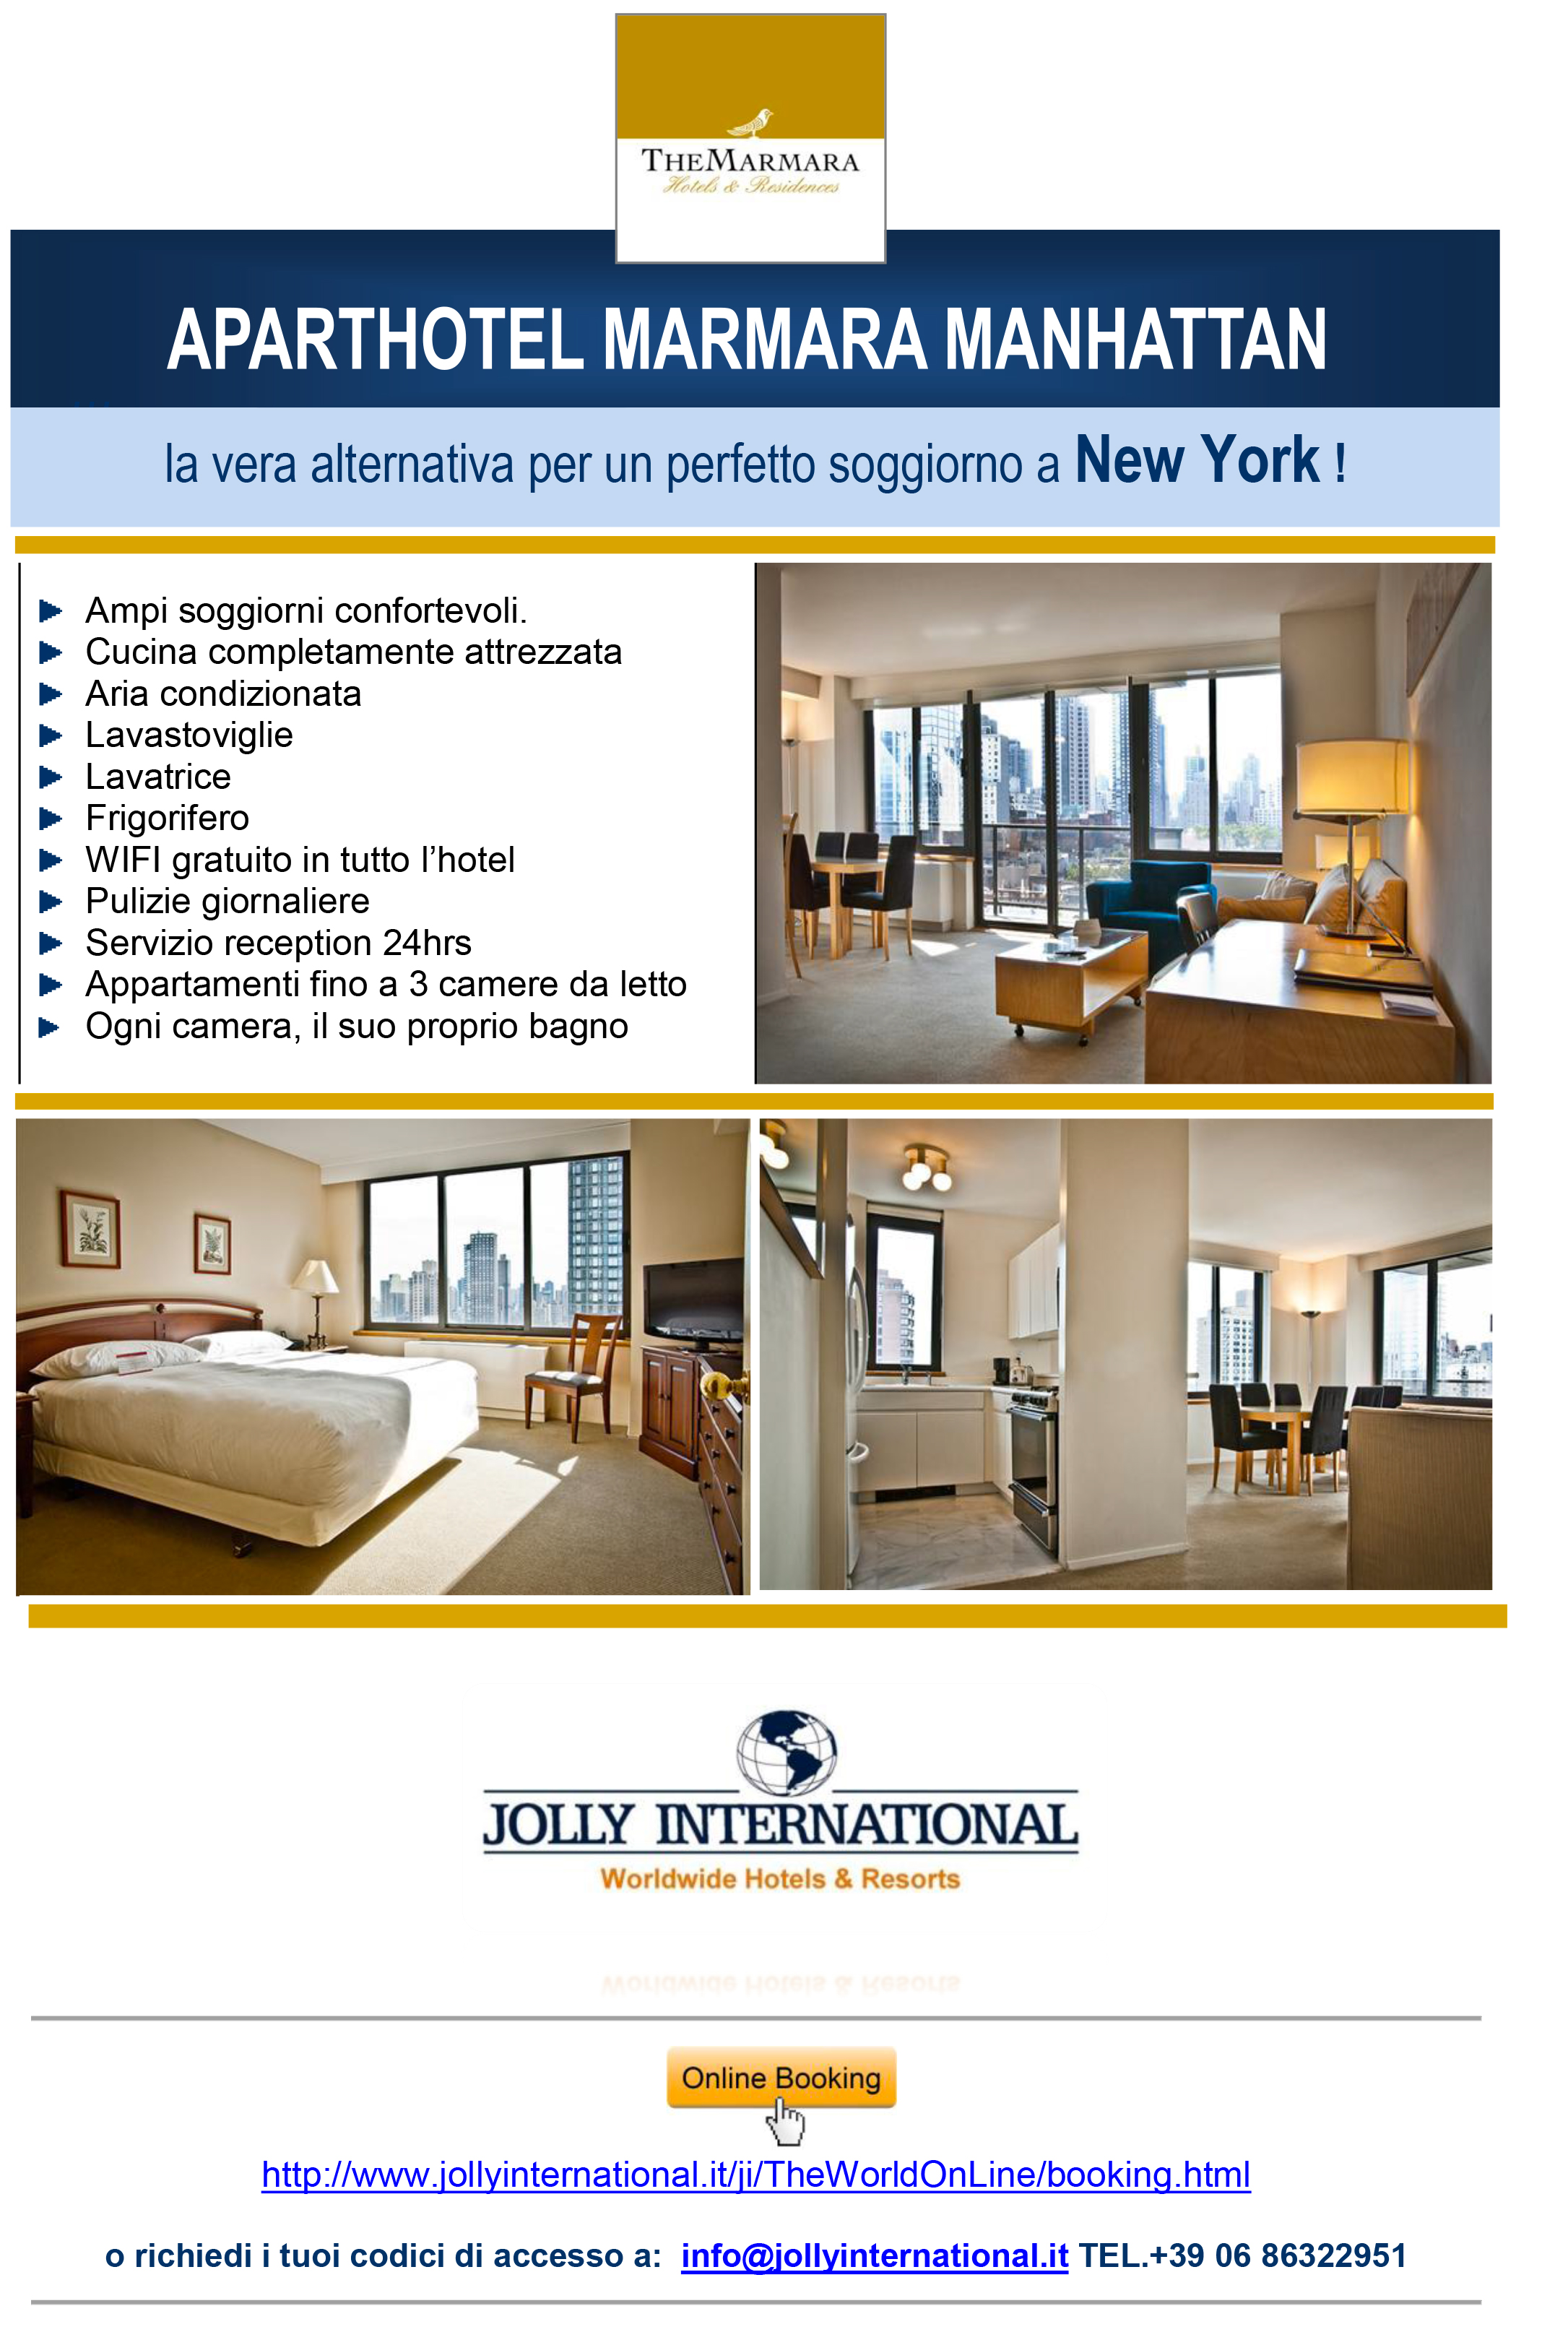 Jolly international appartamenti a new york e miami for Appartamenti new york affitto manhattan